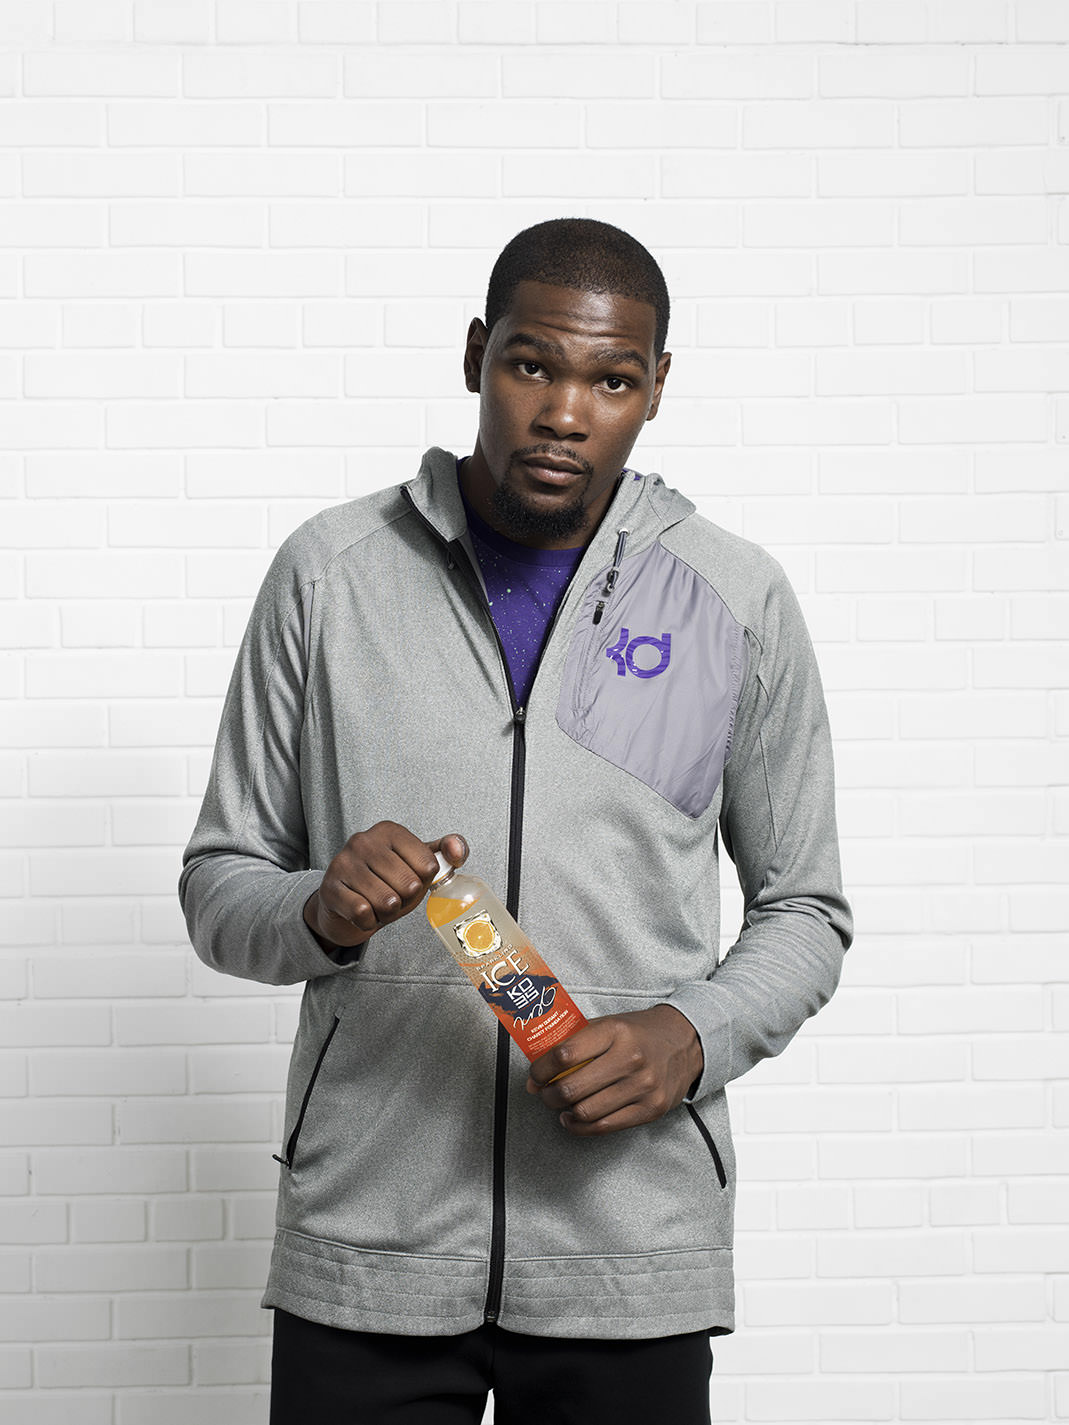 Kevin Durant for Sparkling ICE by photographer John Keatley